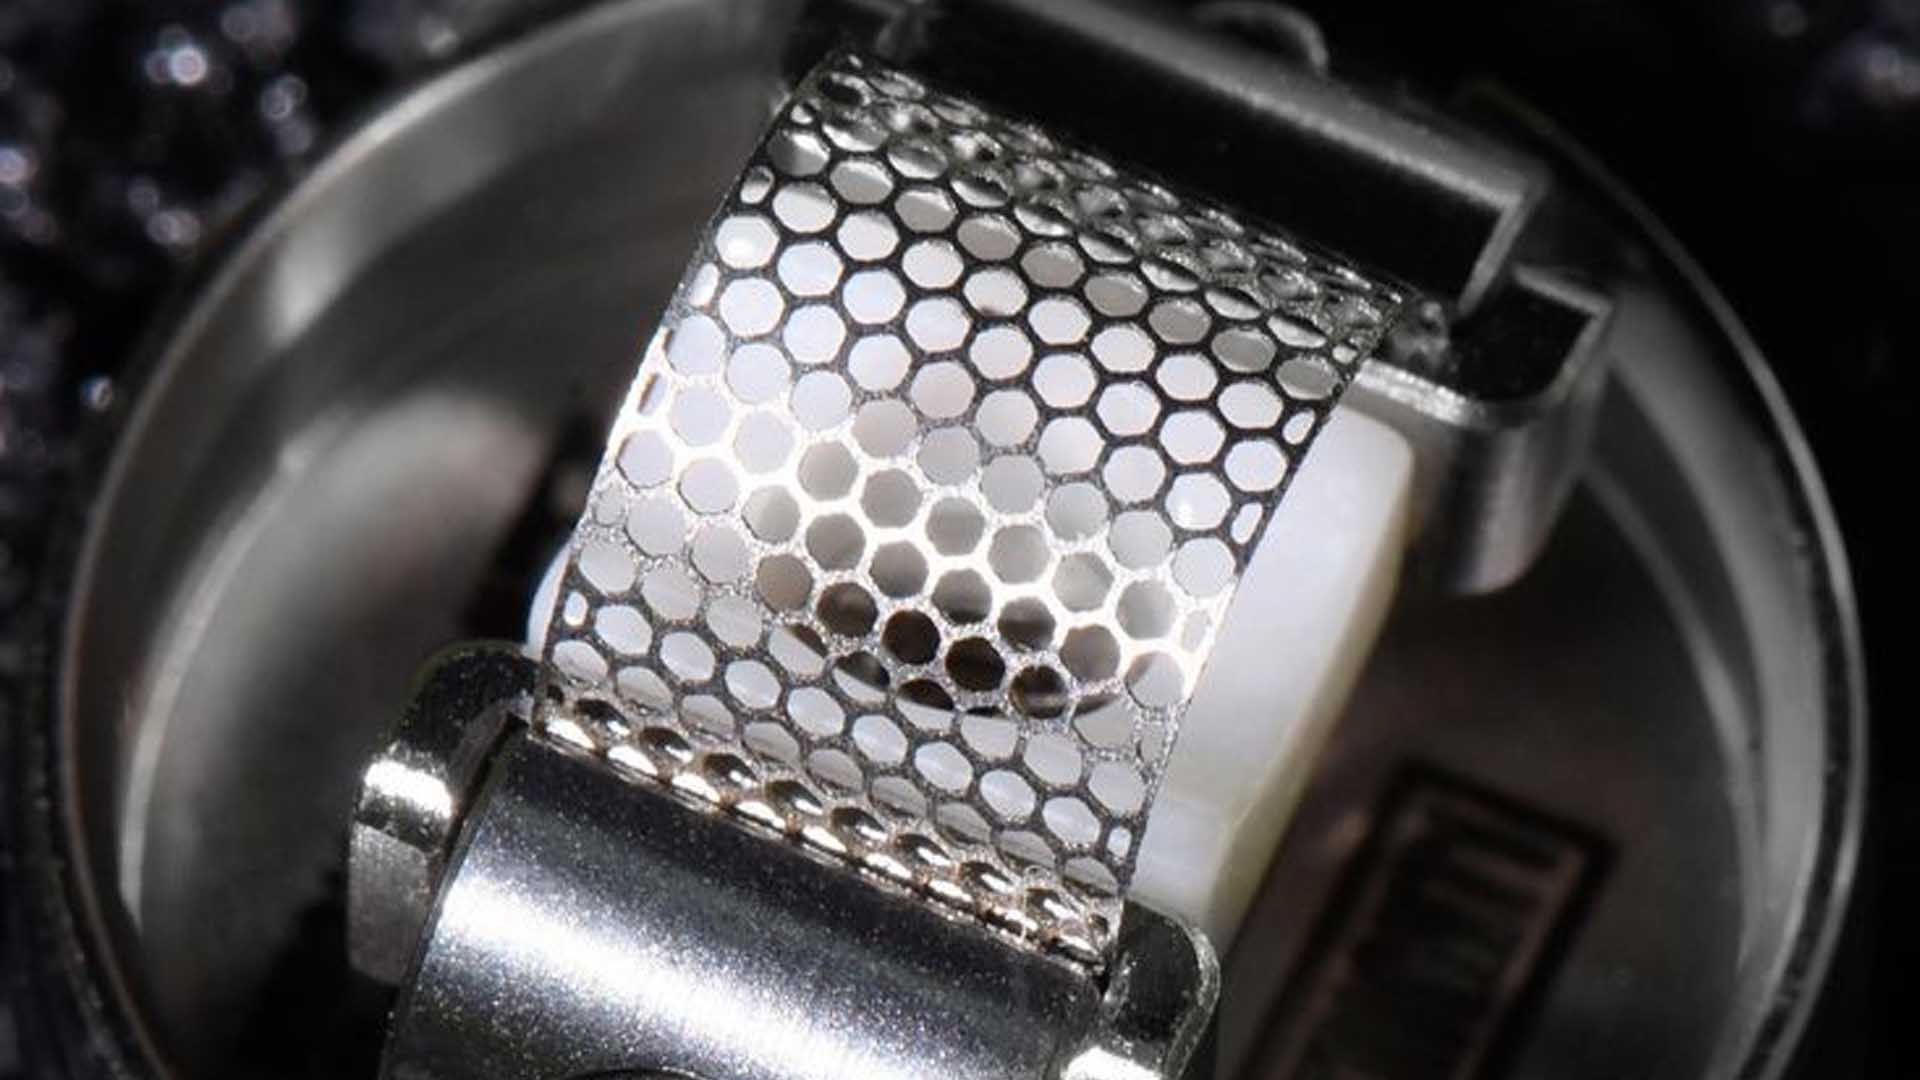 Close up of the mesh coil